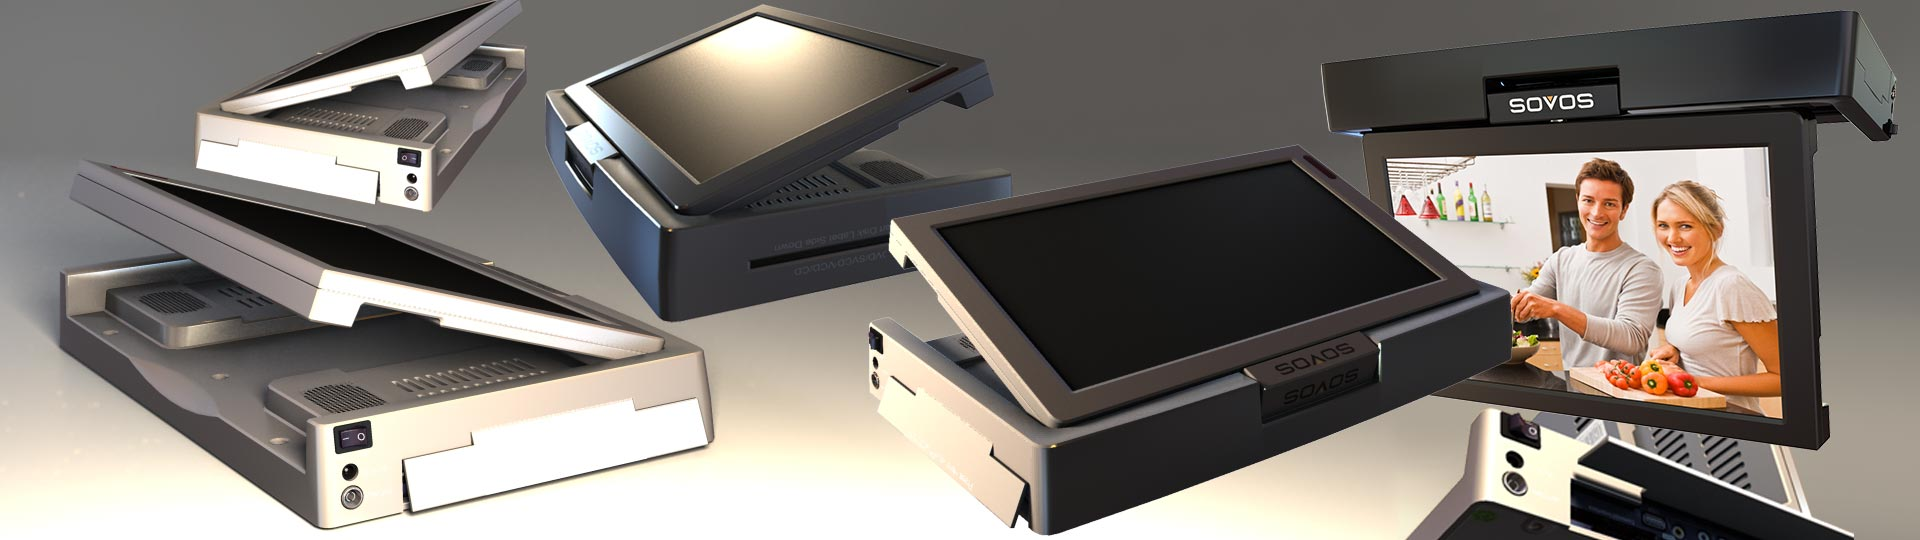 3D Product Visualization of consumer electronics